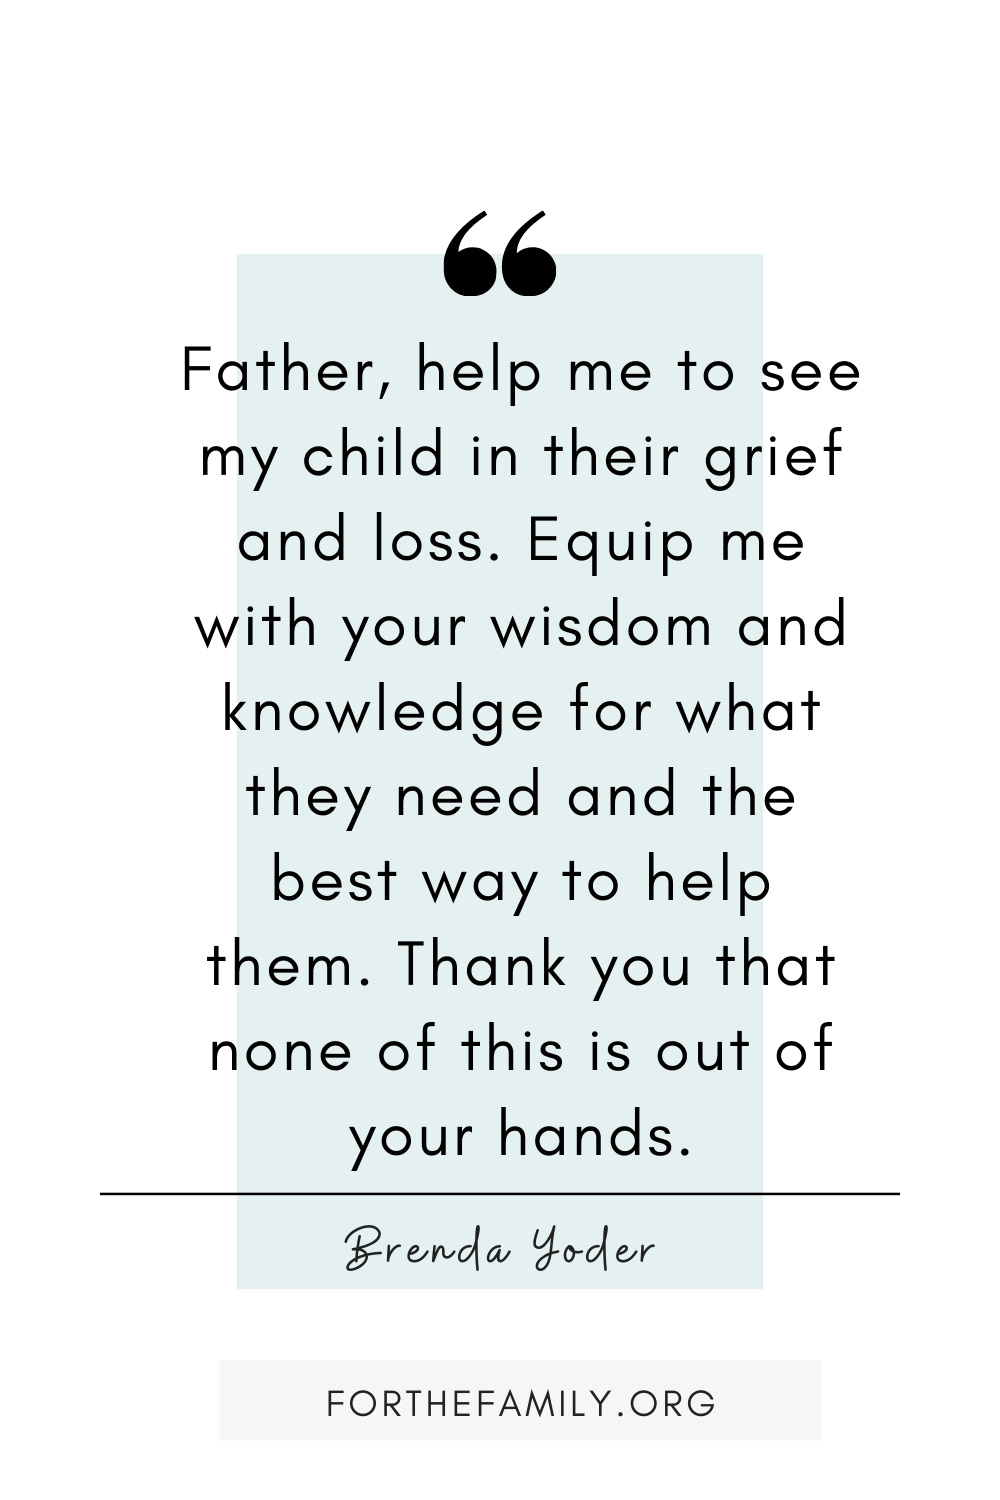 """Father, help me to see my child in their grief and loss. Equip me with your wisdom and knowledge for what they need and the best way to help them. Thank you that none of this is out of your hands."""